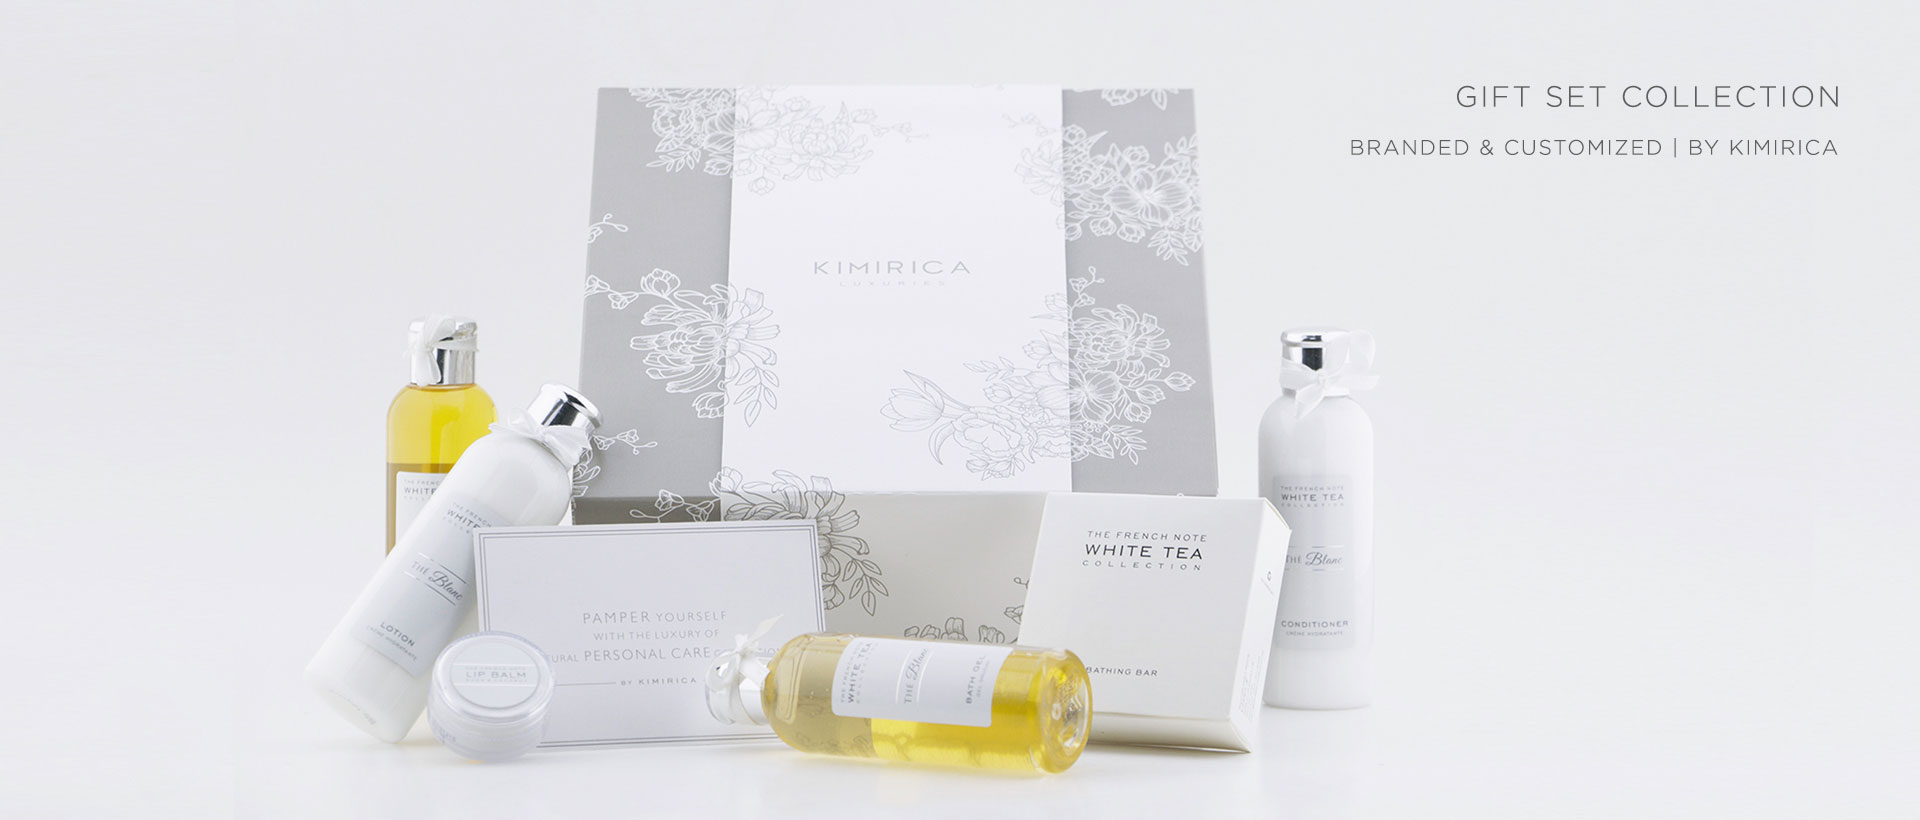 Hotel Toiletries India, Customised Gift set Collection for Hotels, Kimirica Hunter International.